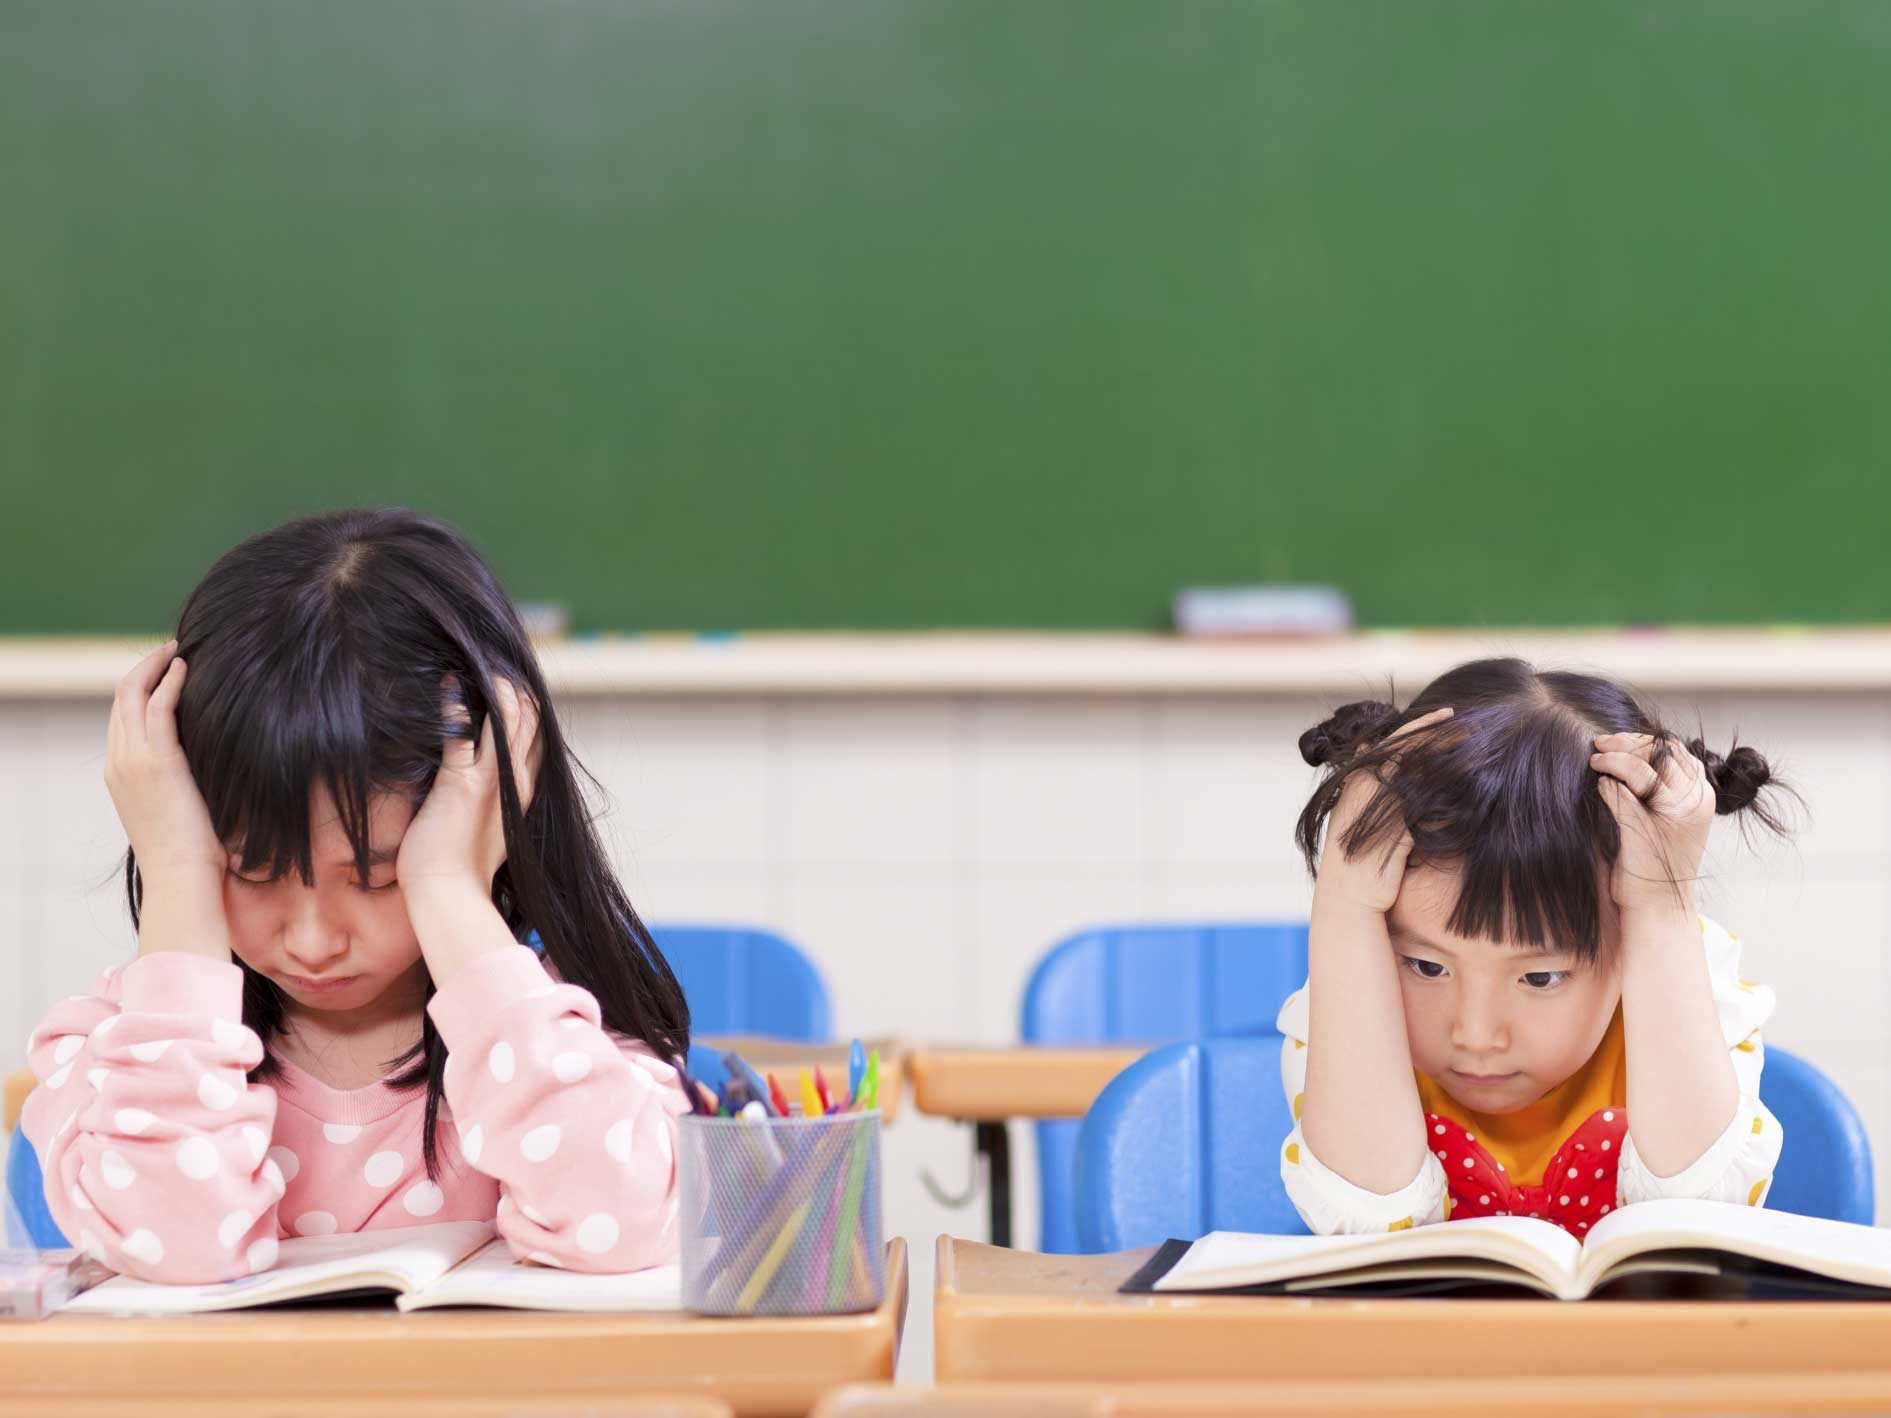 Things You Didn't Know About School: Teachers